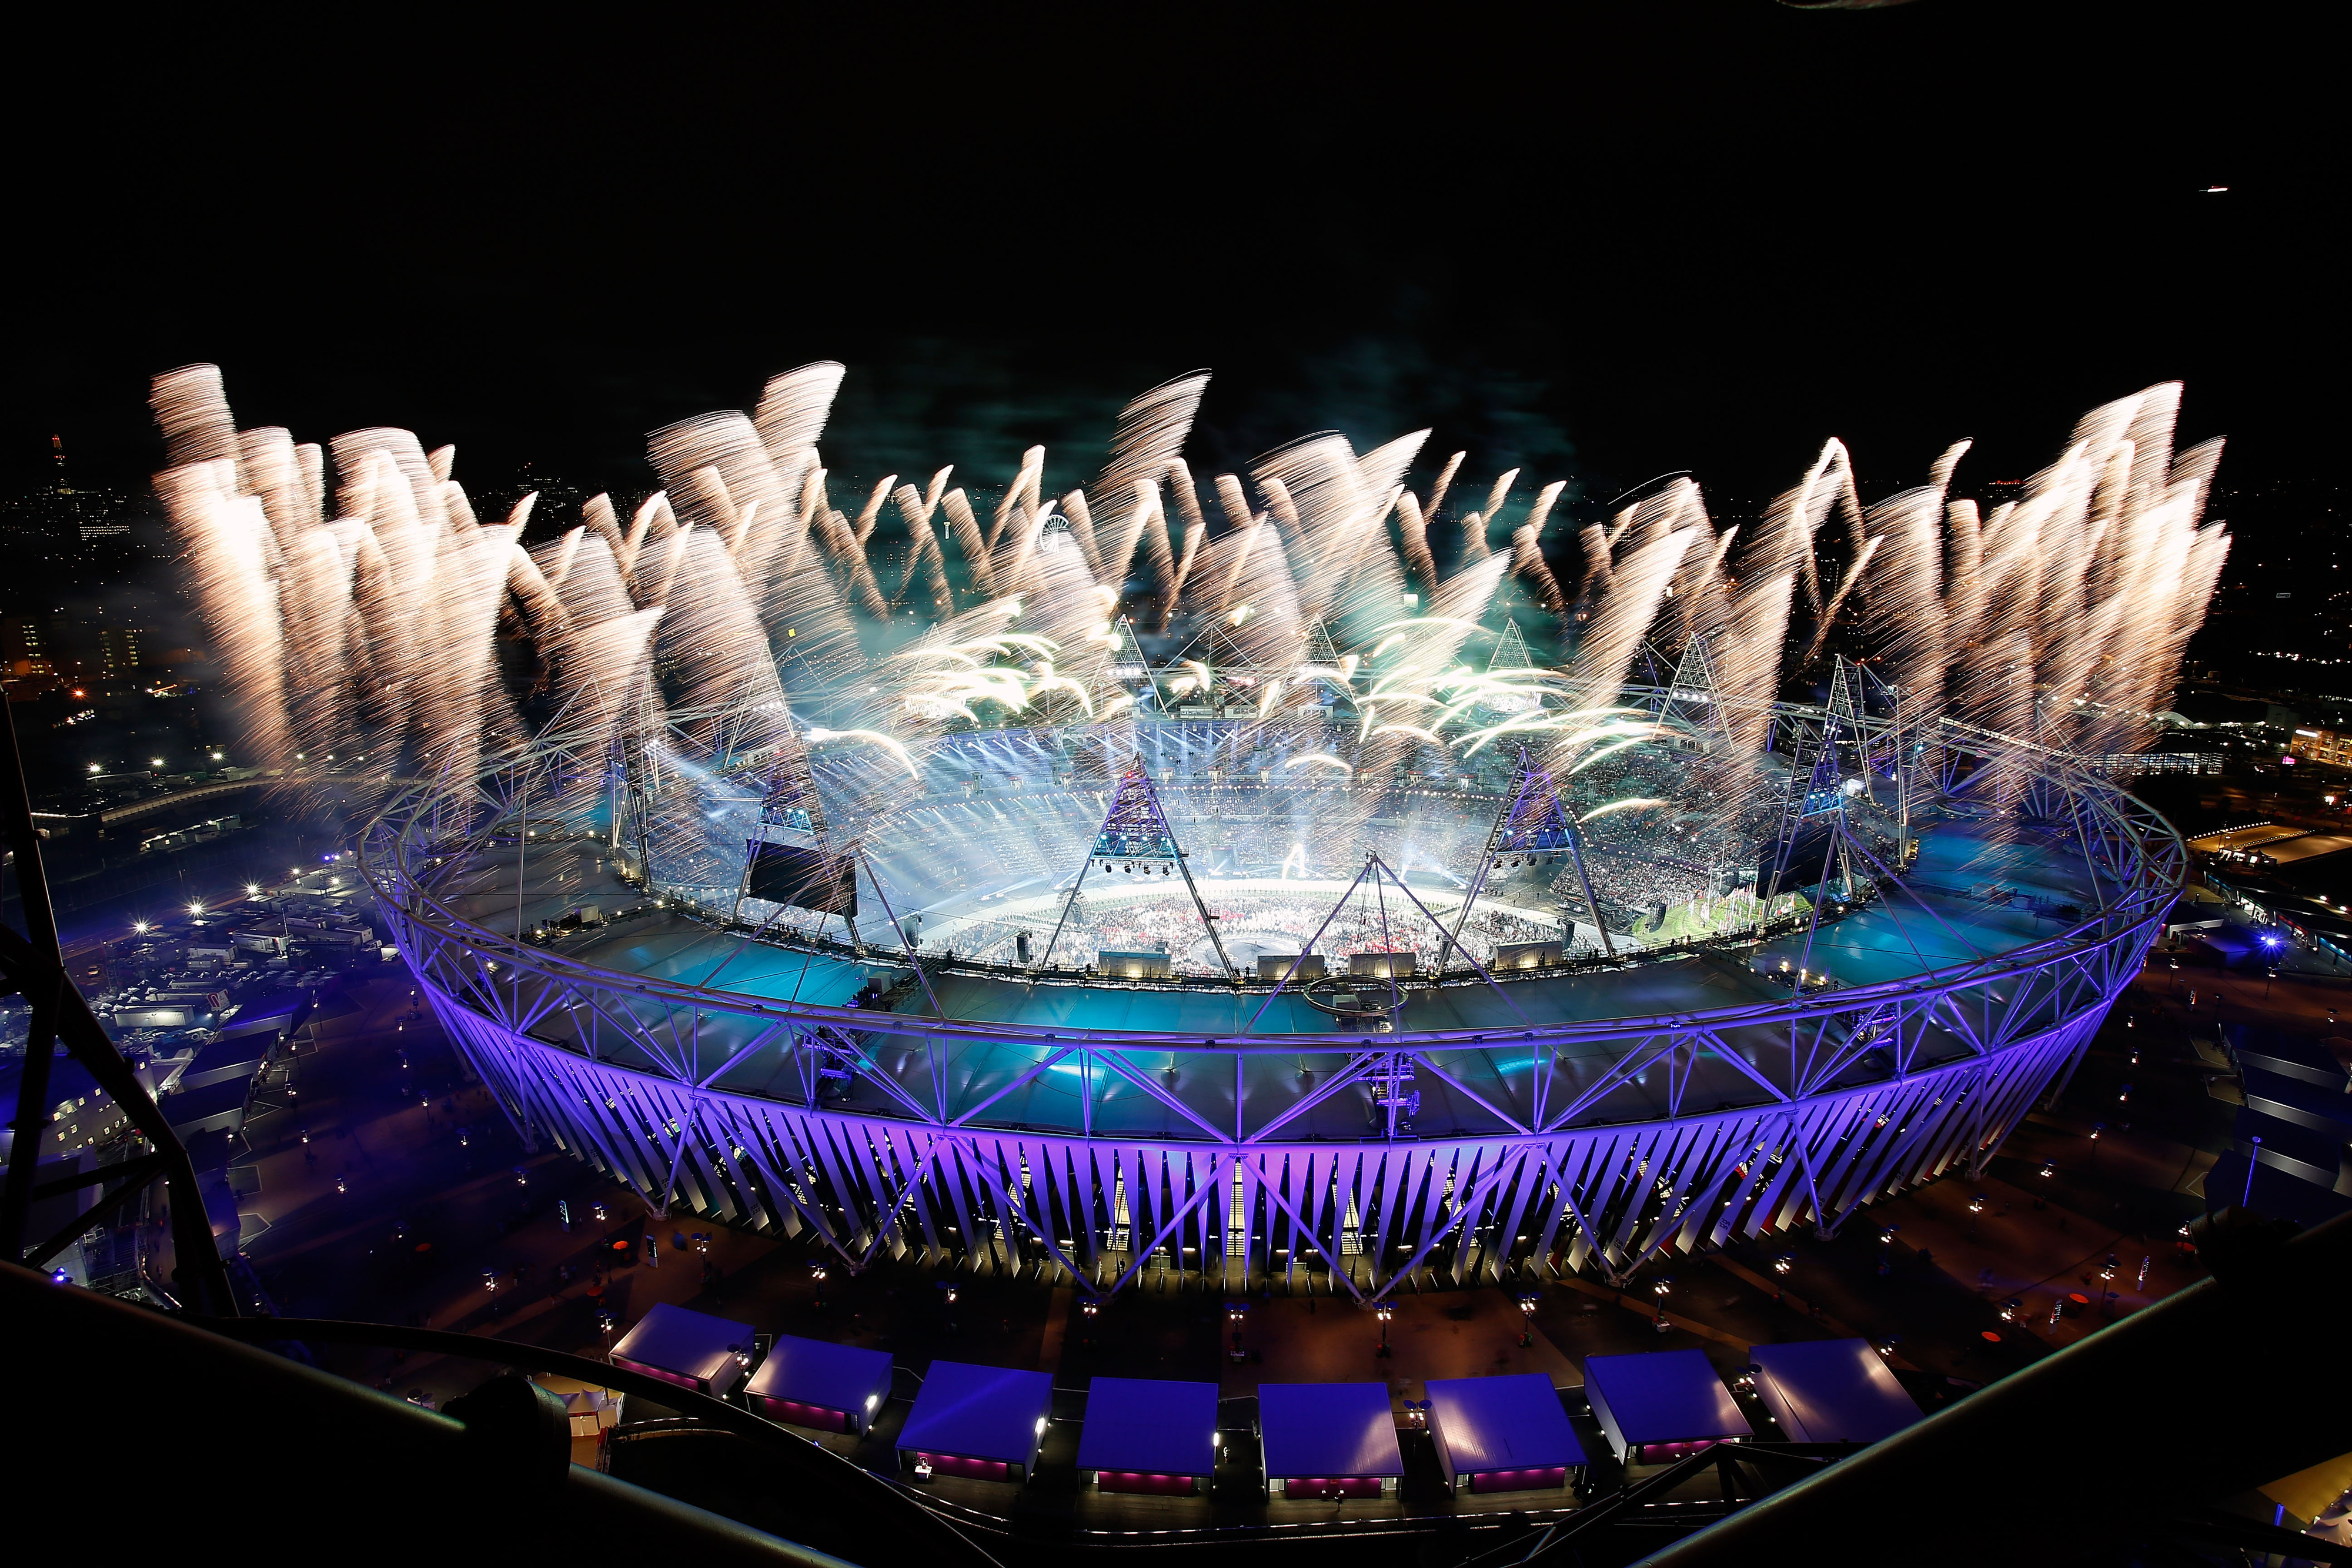 LONDON, ENGLAND - JULY 27:  Fireworks ignite over the Olympic Stadium during the Opening Ceremony for the 2012 Olympic Games on July 27, 2012 at Olympic Park in London, England.  (Photo by Jamie Squire/Getty Images)